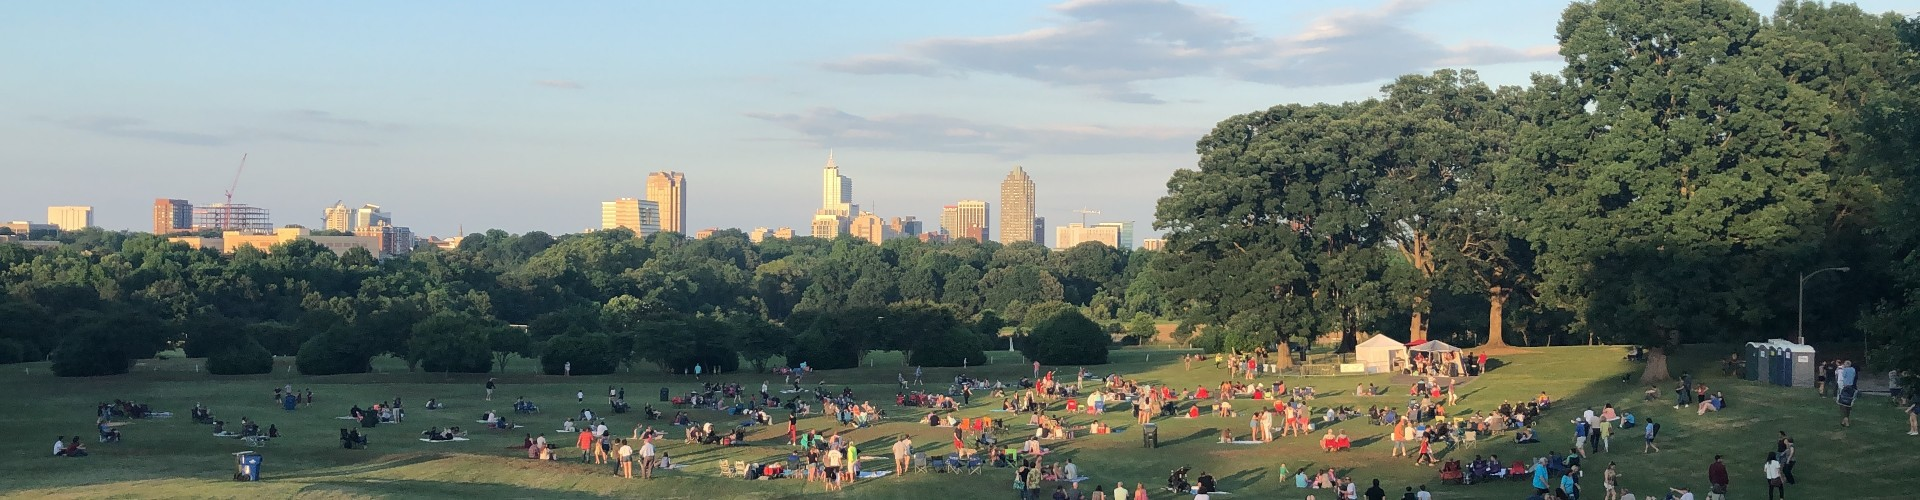 View of Flowers Field at Dix park with people on the lawn and the Raleigh skyline in the background